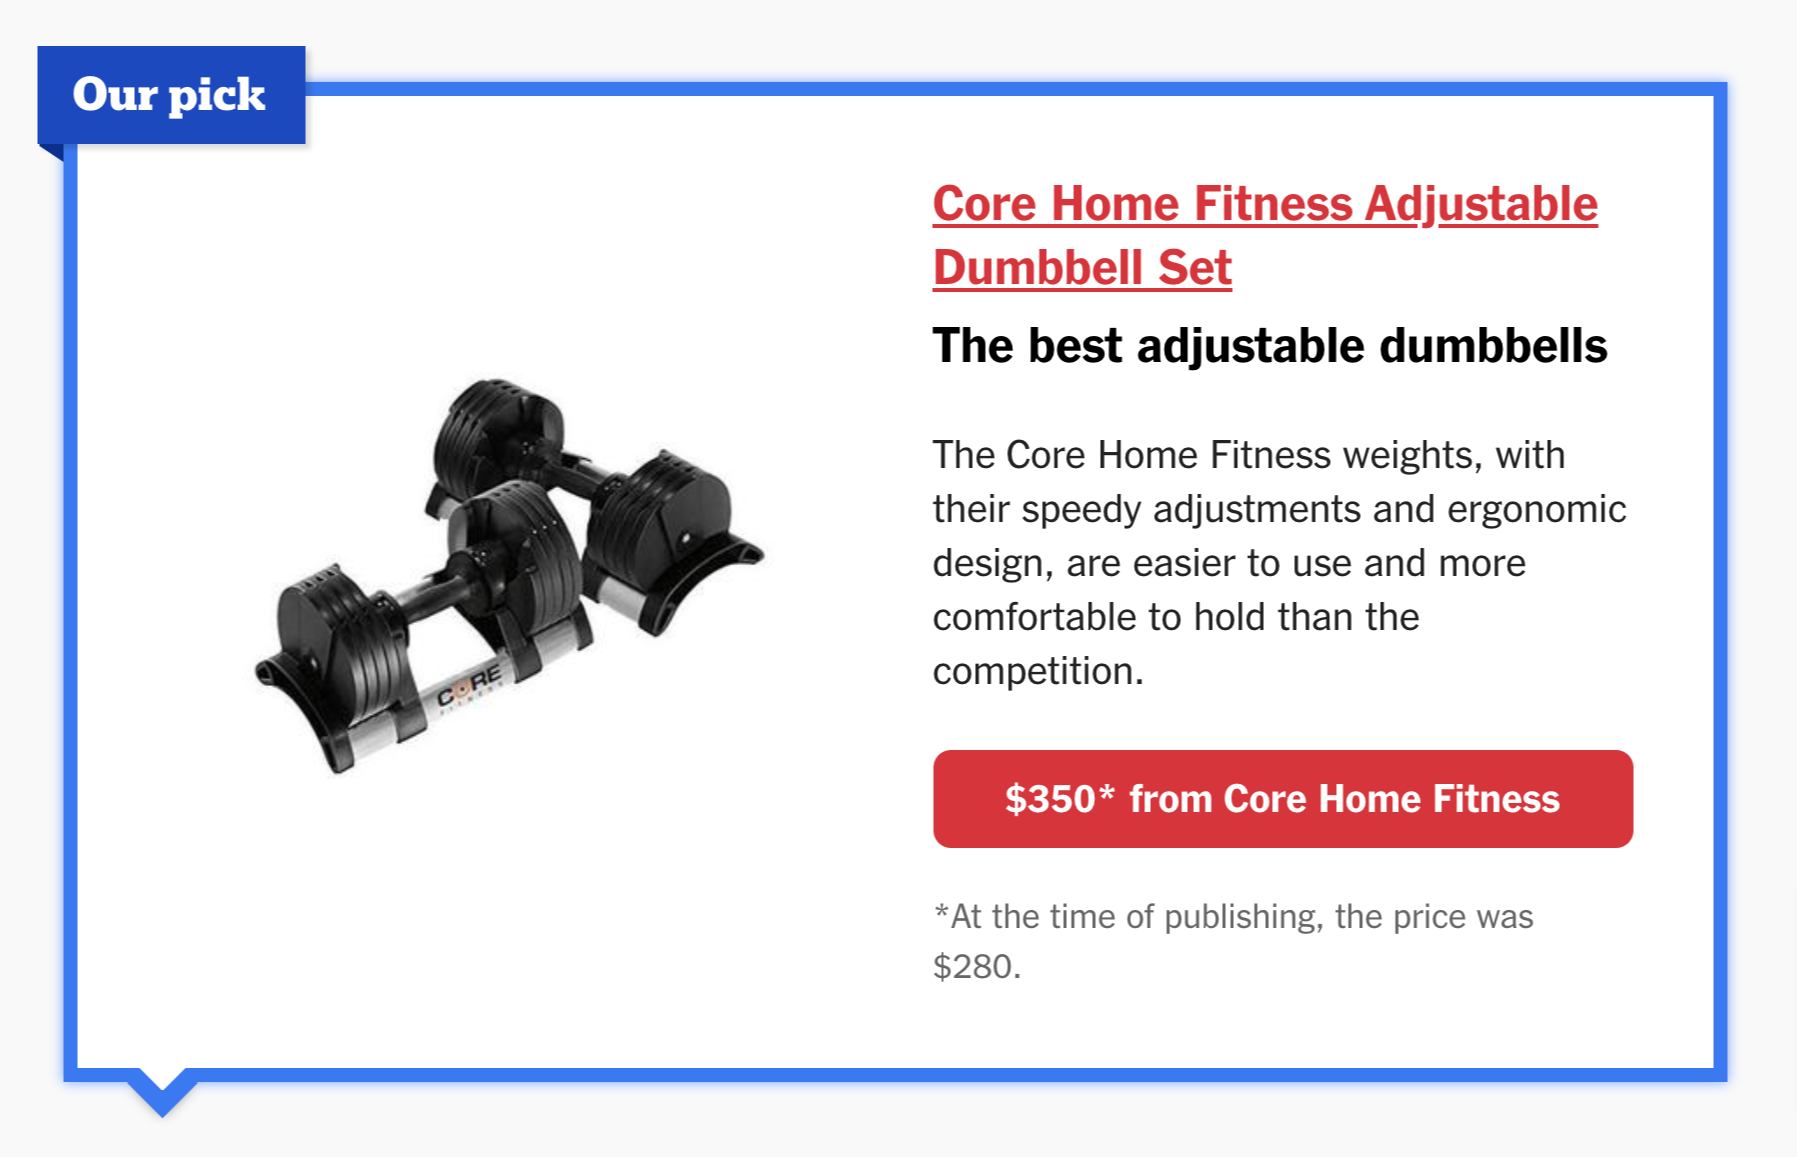 best adjustable dumbbell core home fitness dumbbells voted by Wirecutter